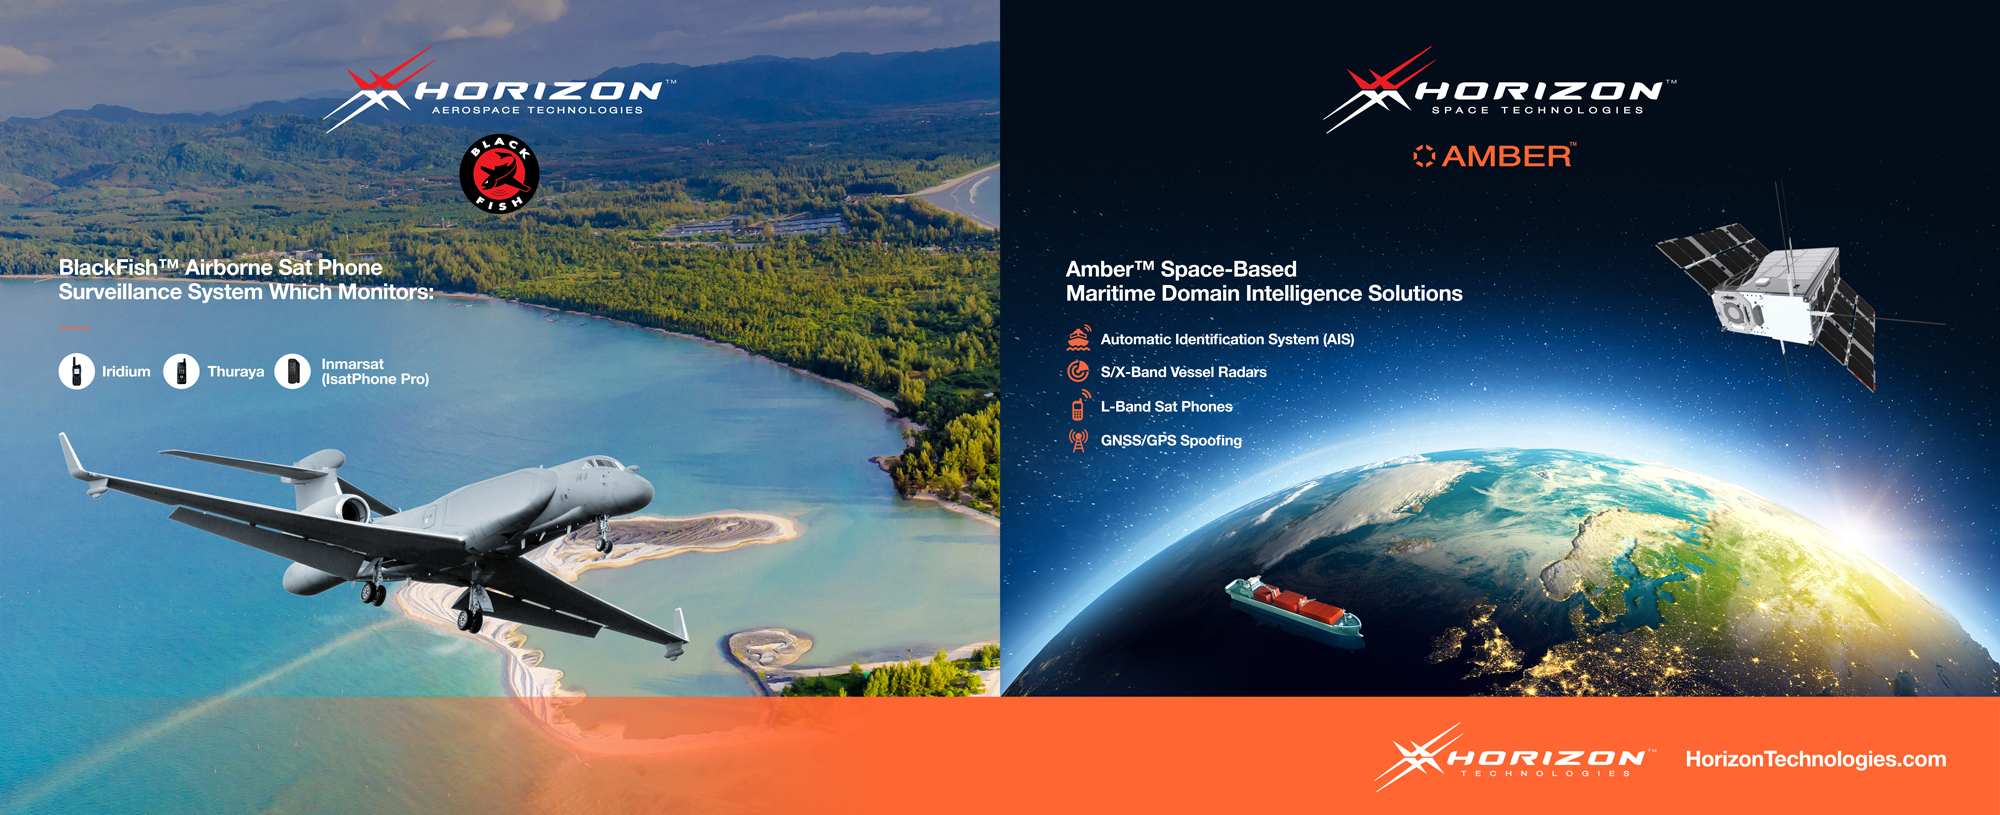 Horizon Technologies Exhibits New BlackFish™ Tri-Band SIGINT System and Amber™ Space-driven Maritime Intelligence Data Service At DSEI, 14-17 September 2021